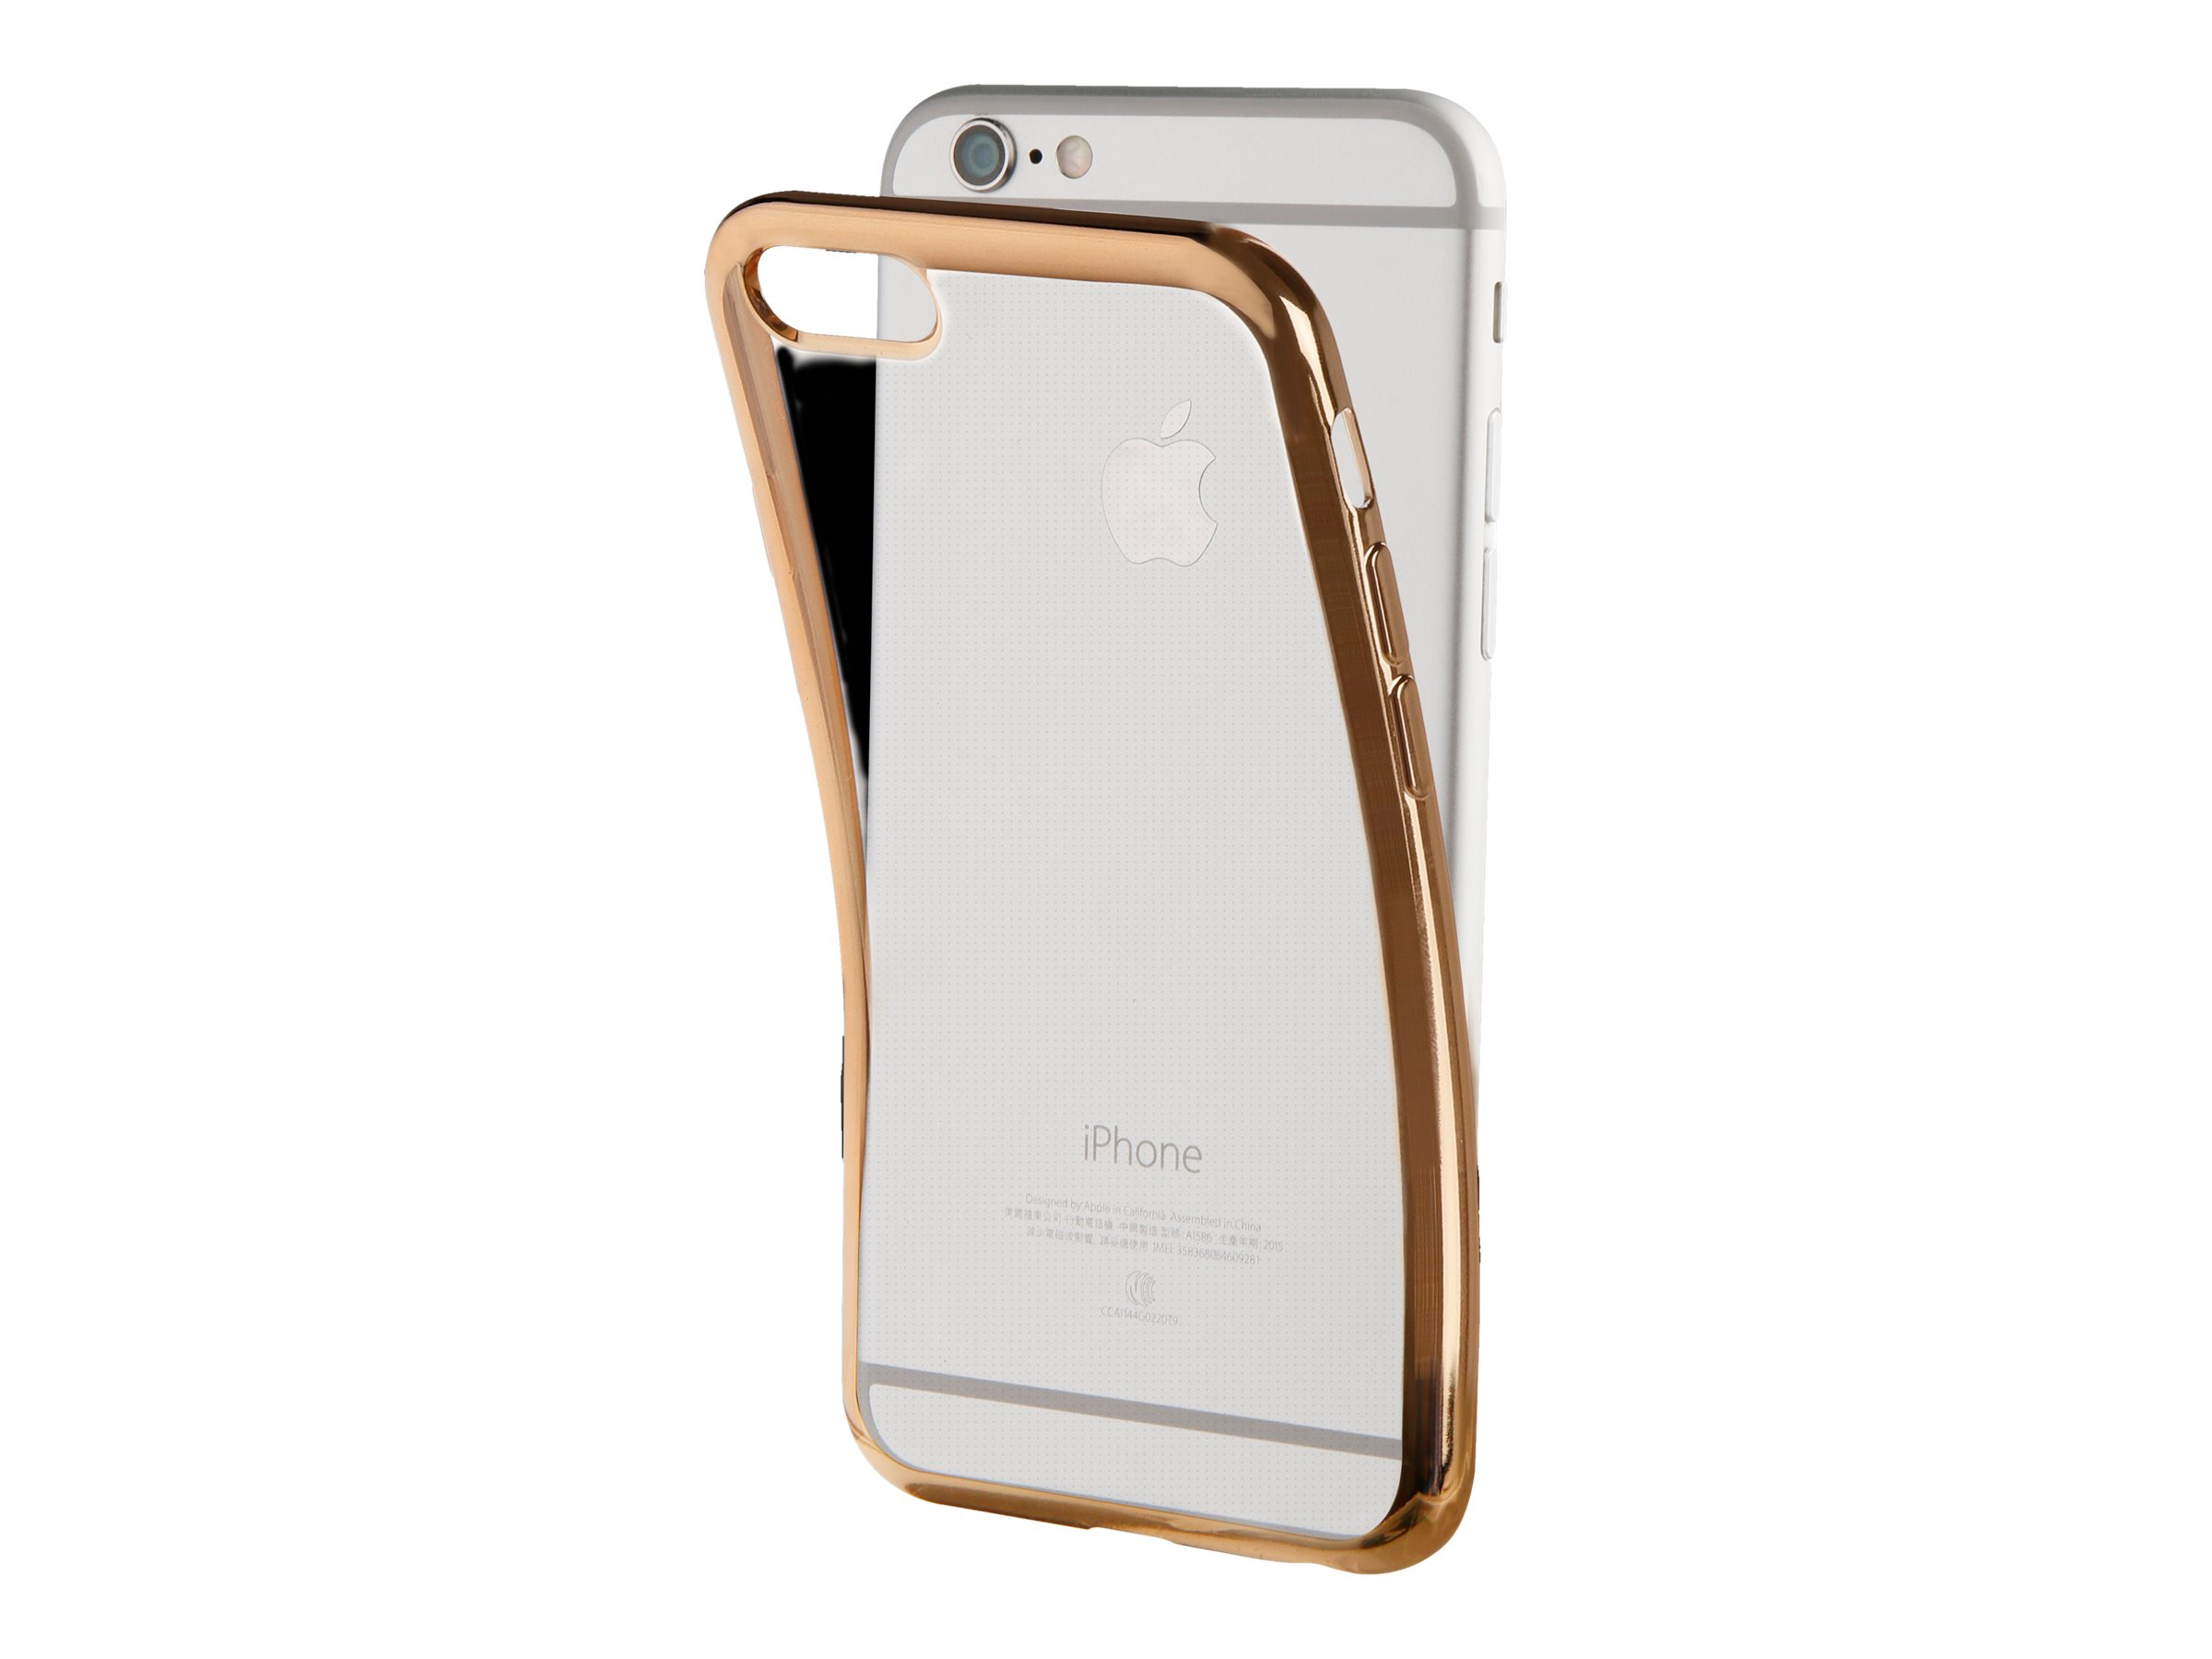 MUVIT LIFE - Coque de protection pour iPhone 7 Plus - transparent - or